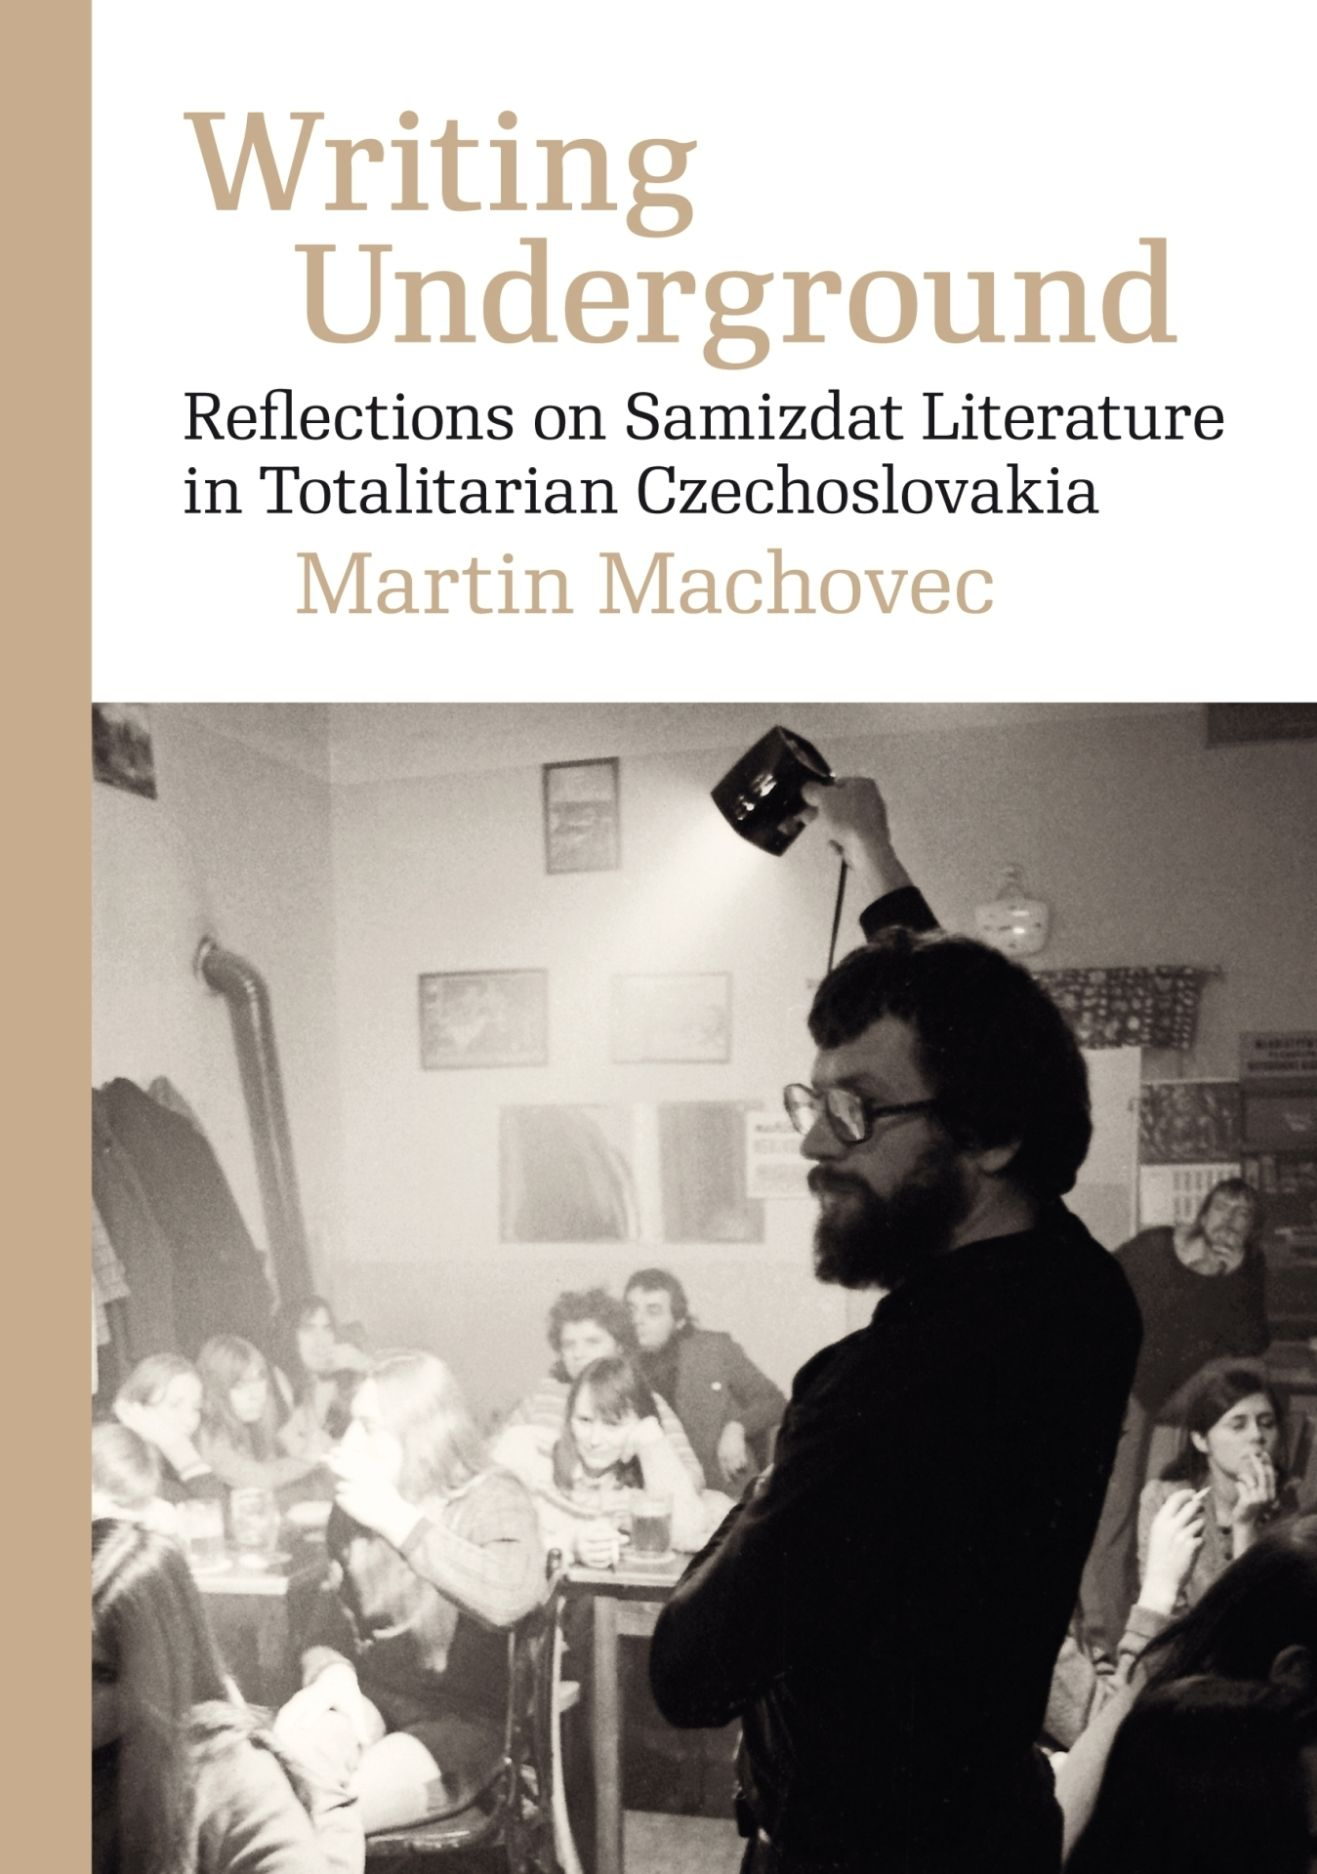 Writing Underground: Reflections on Samizdat Literature in Totalitarian Czechoslovakia